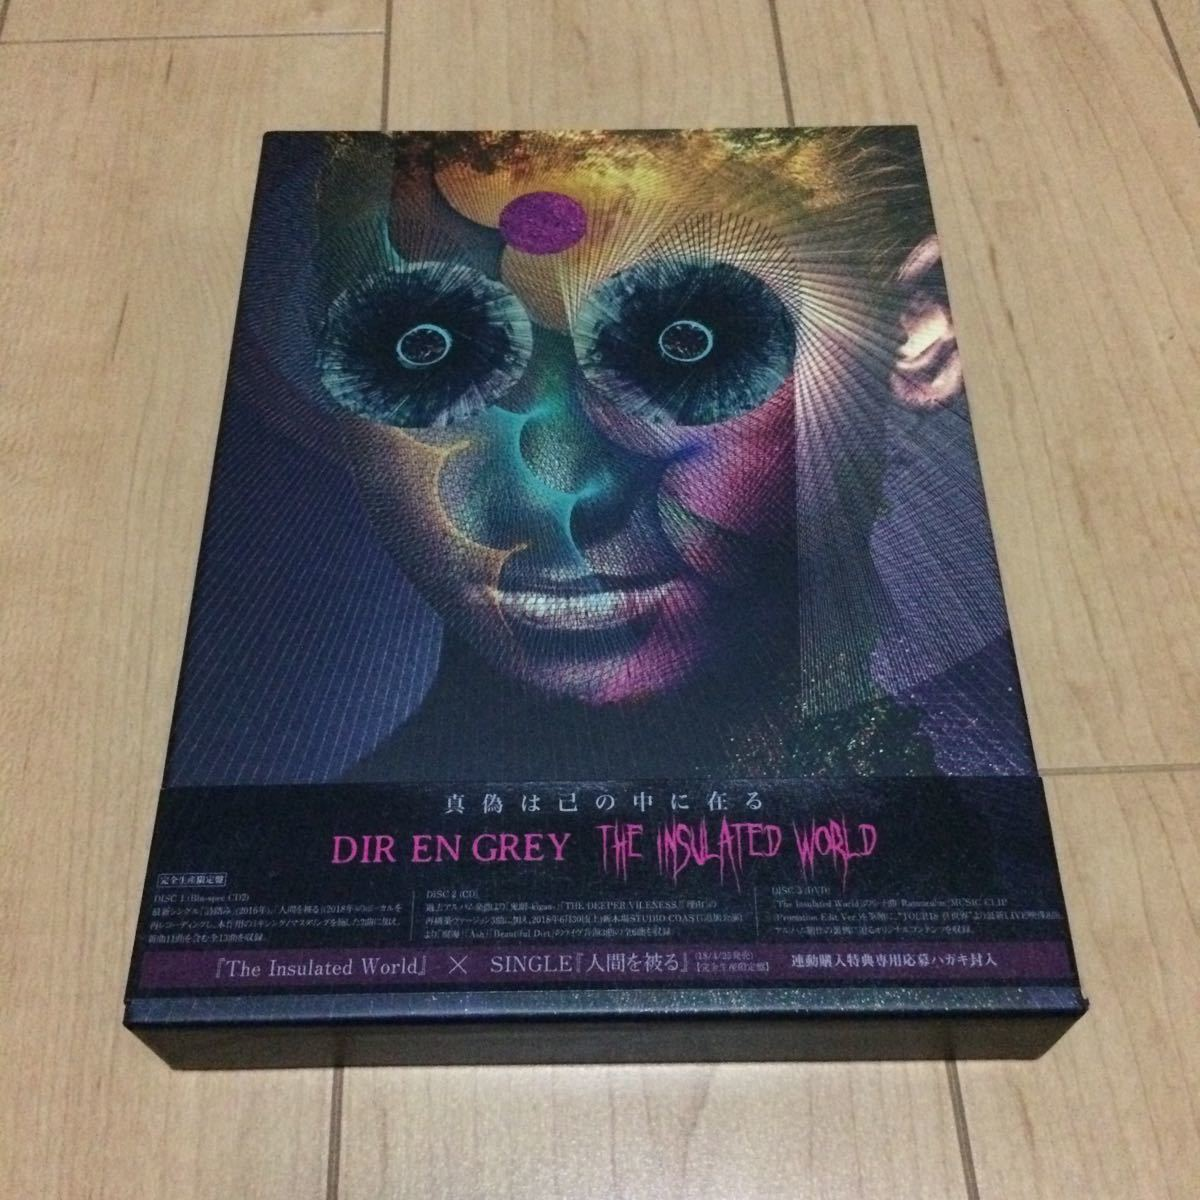 DIR EN GREY CD The Insulated World(完全生産限定盤)(Blu-spec CD2+CD+DVD) アルバム_画像1